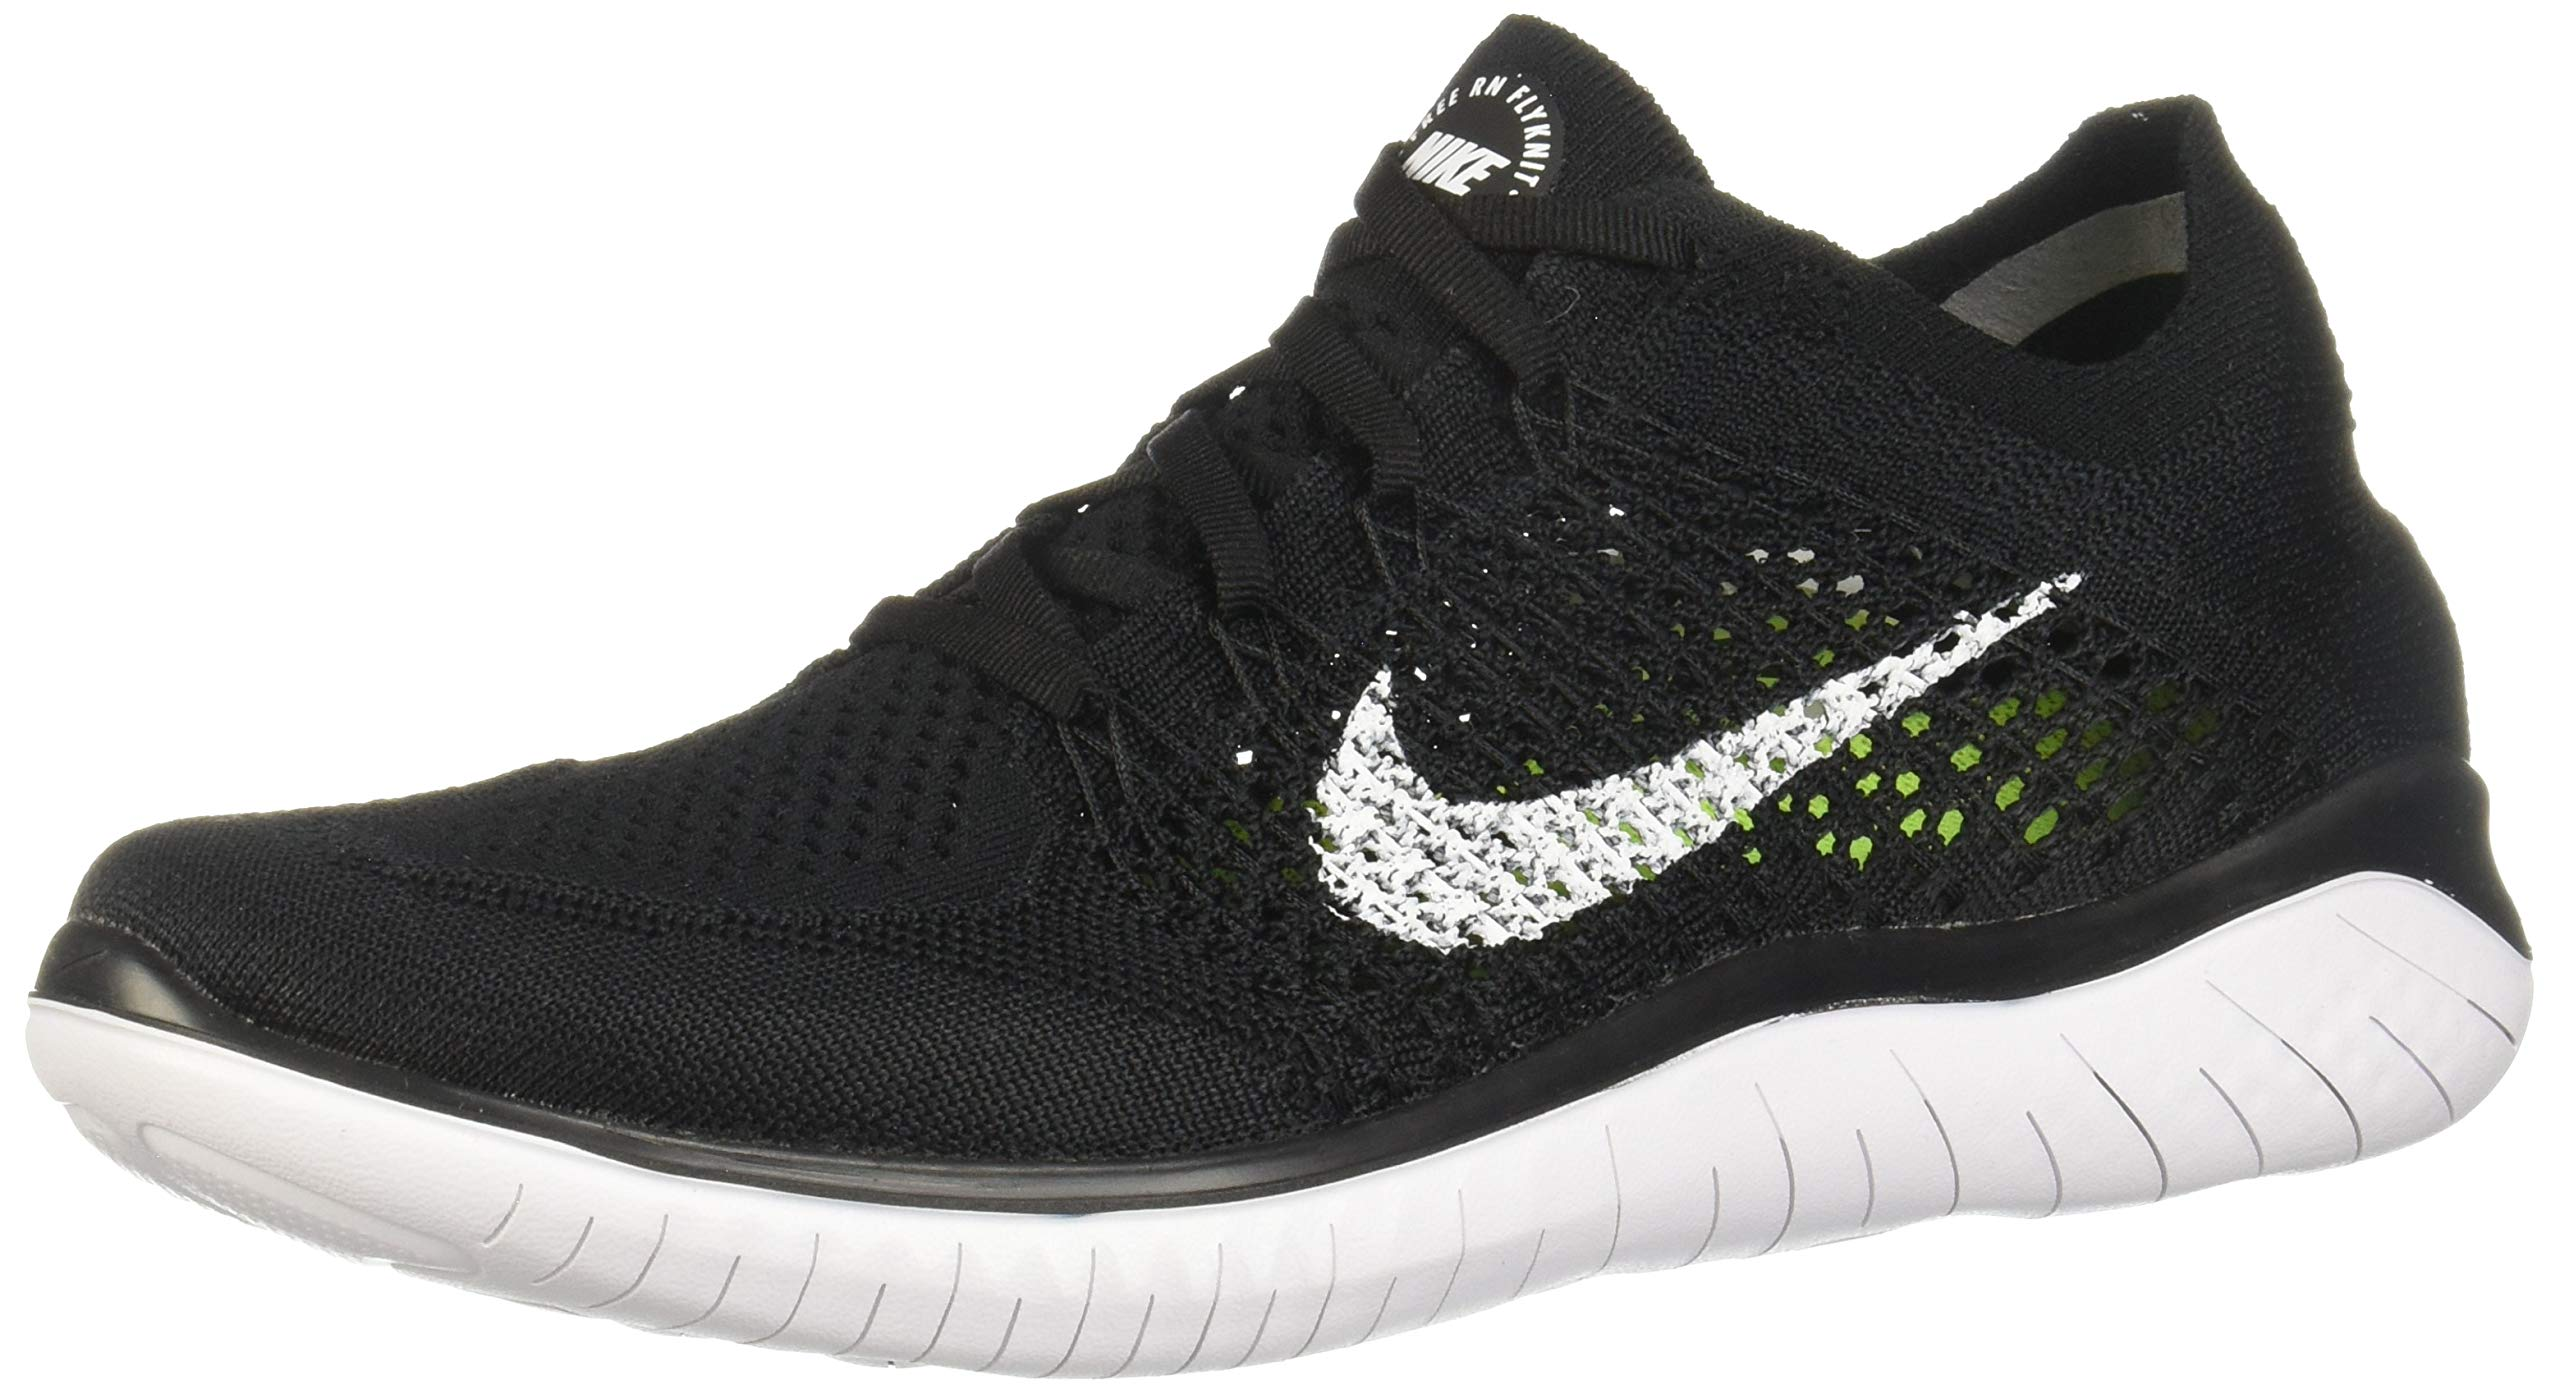 Nike Men's Free Rn Flyknit 2018 Black/White Running Shoe 10.5 Men US by Nike